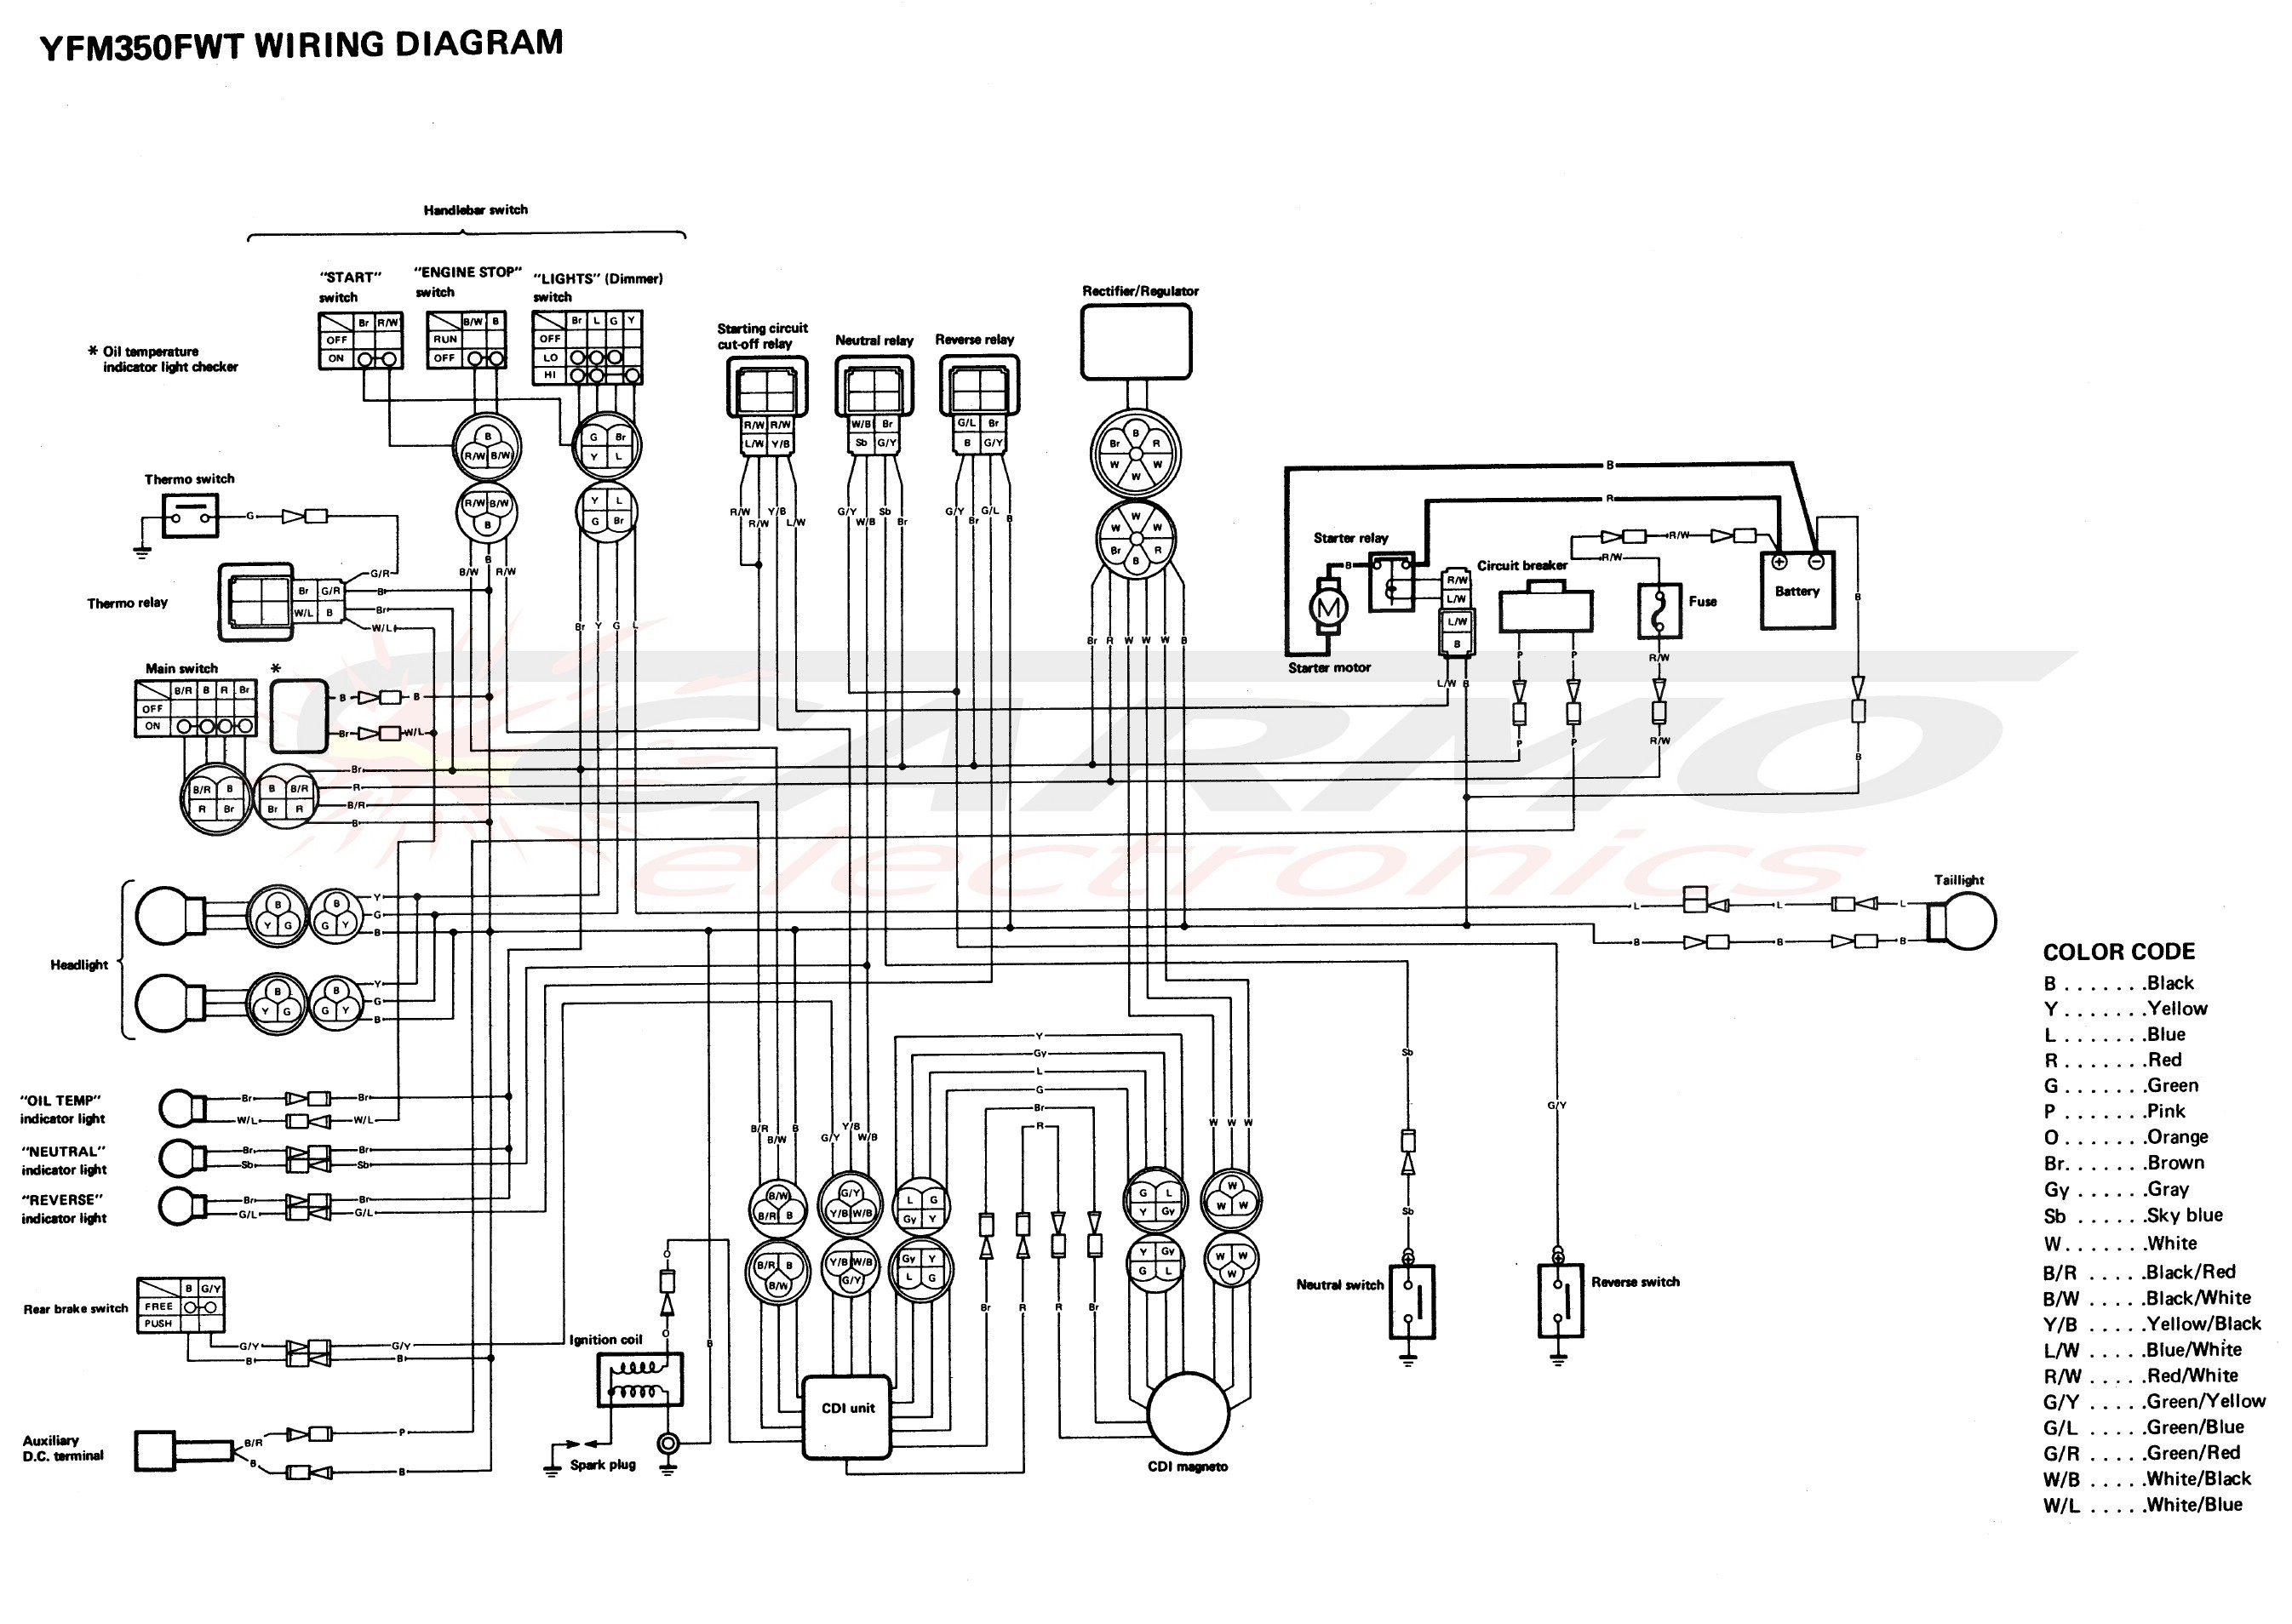 yamaha yfm350 wiring diagram   28 wiring diagram images